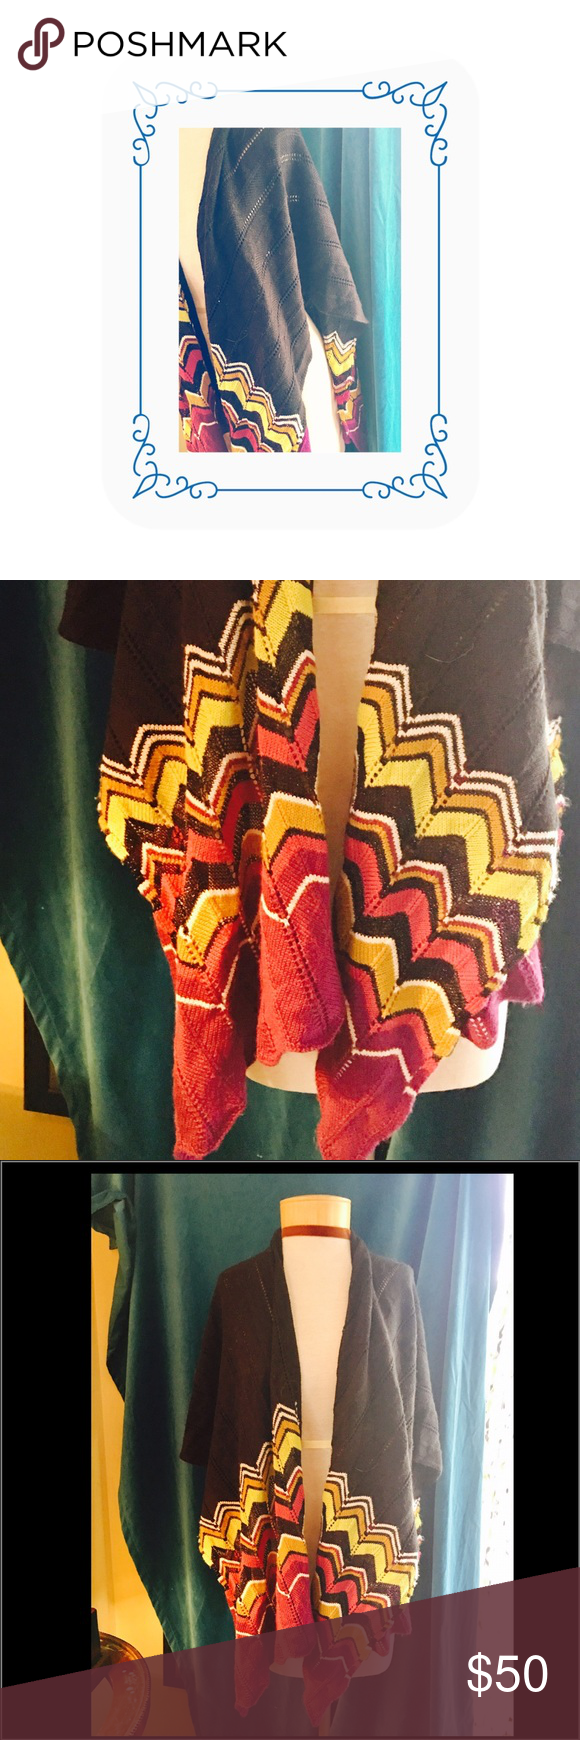 ⚜️Missoni by Target wrap⚜️ ⚜️Magnificent Missoni shawl/wrap for Target & now for you in classic colors & the noted Italian line's luminous design⚜️ Missoni Accessories Scarves & Wraps